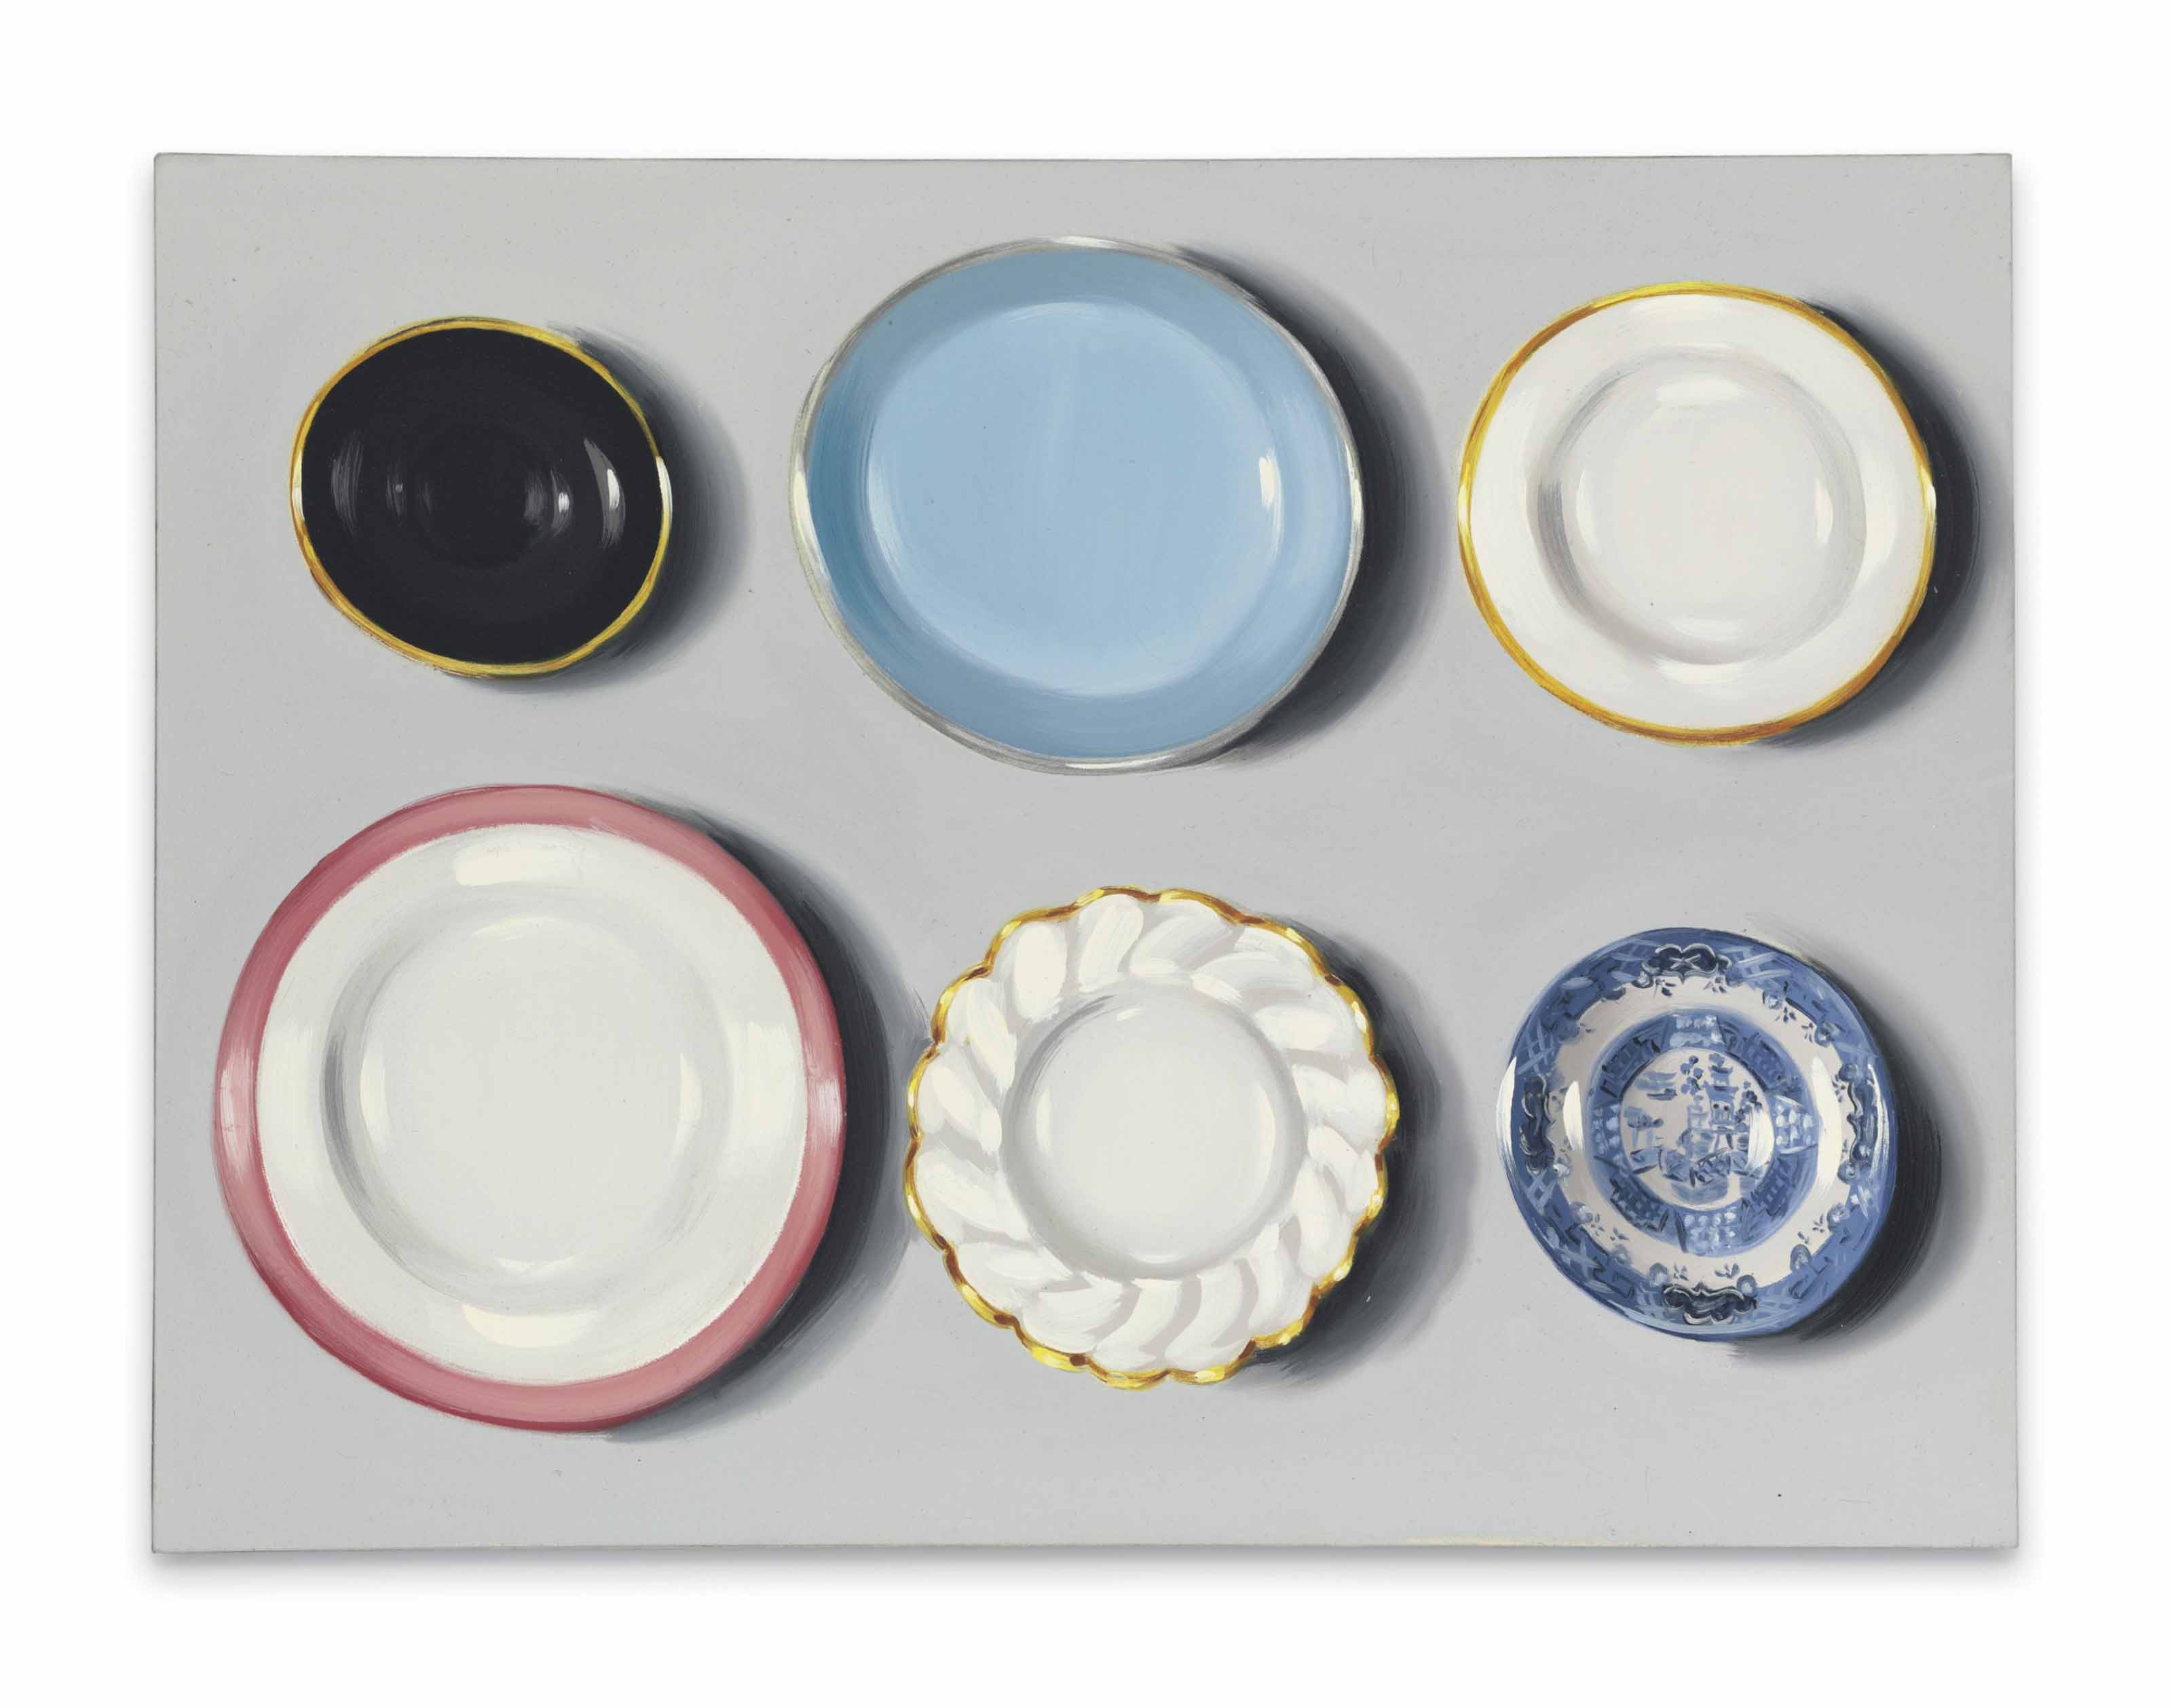 Untitled (Plates)